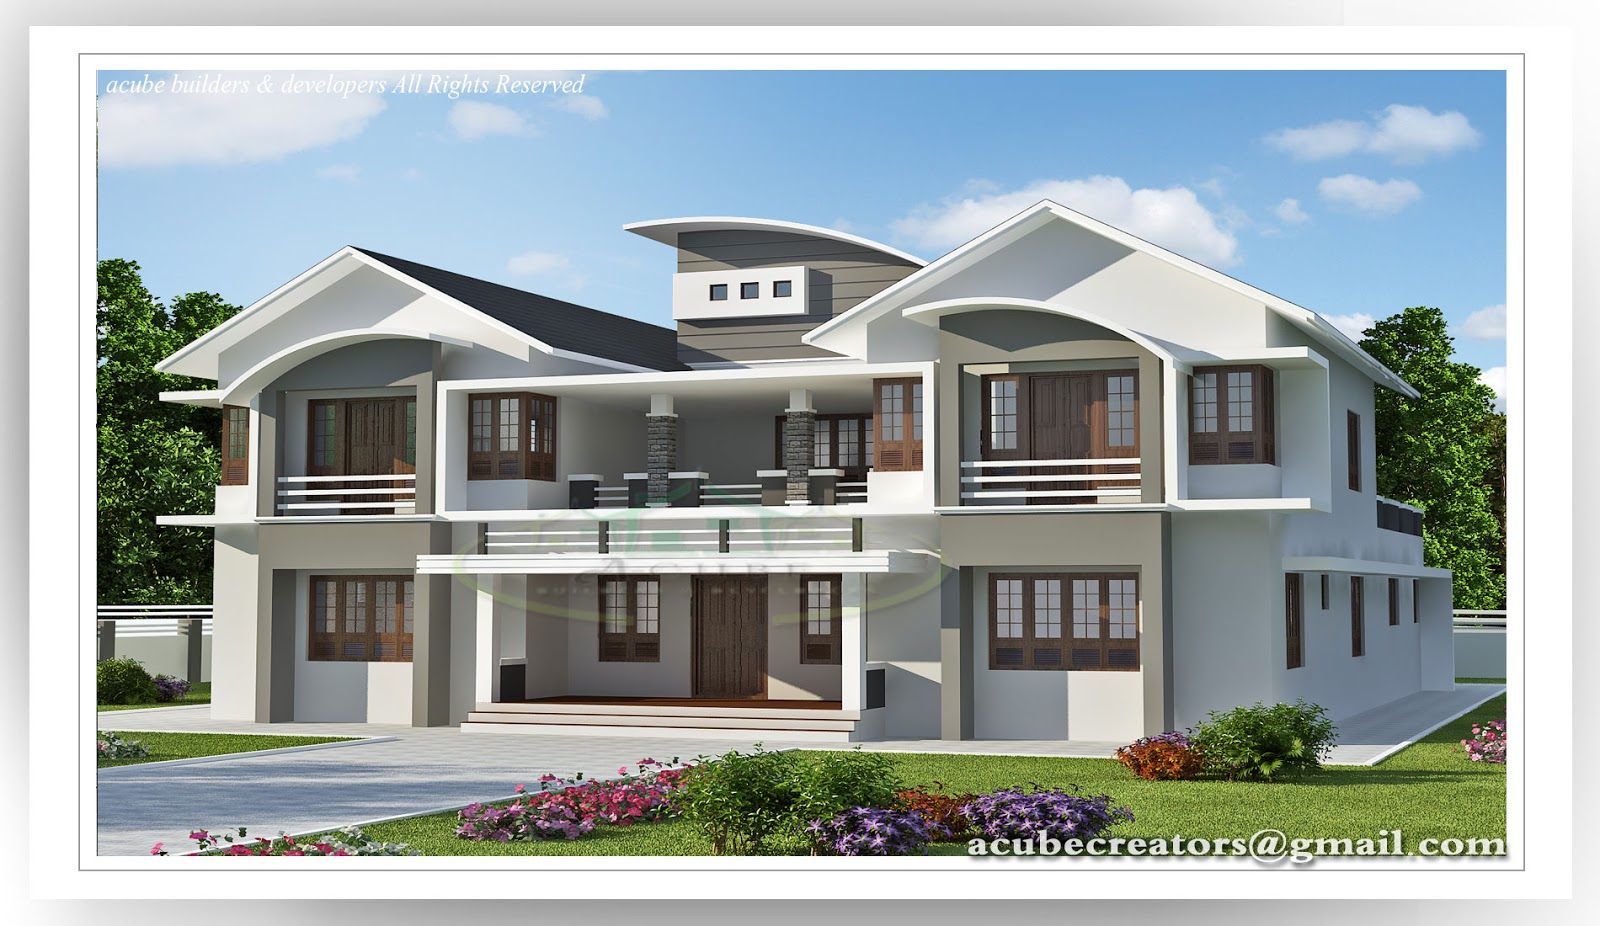 6 bedroom luxury villa design 5091 plan 149 for 6 bedroom 6 bathroom house plans